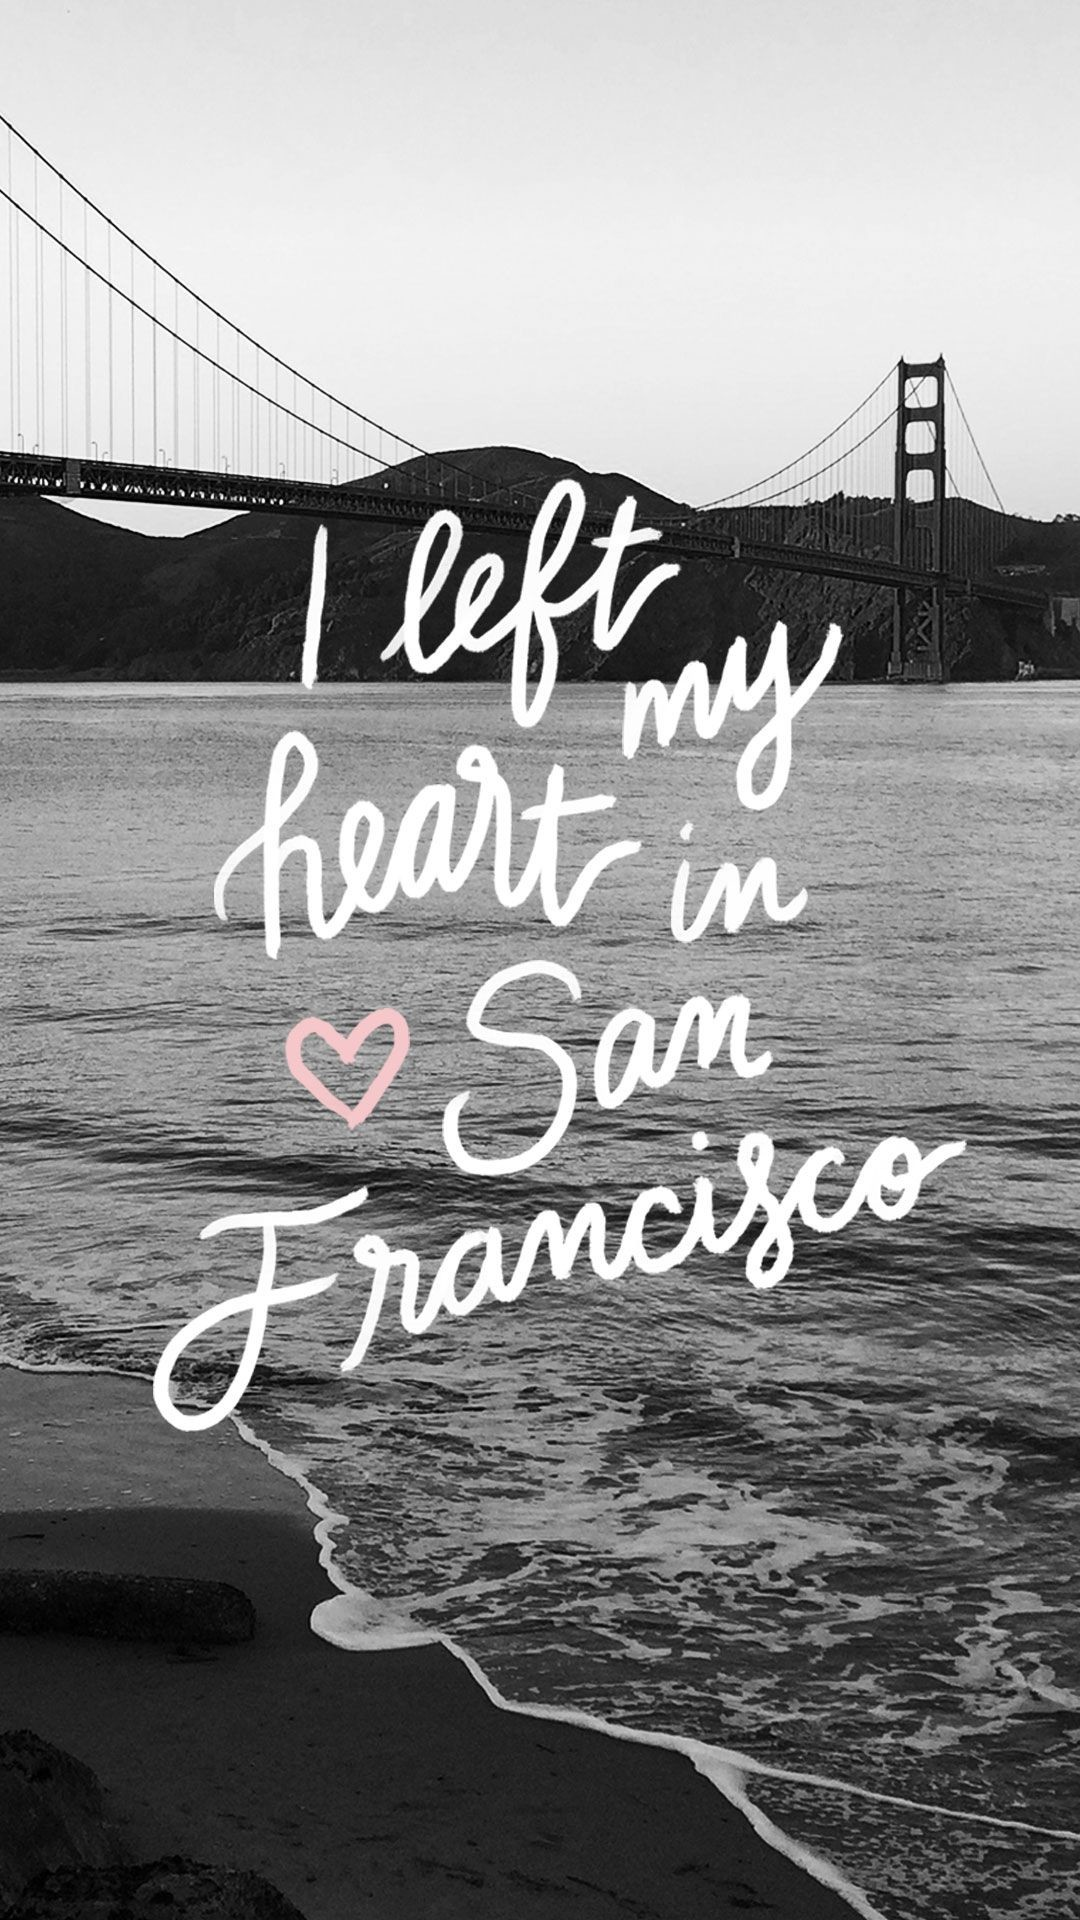 Res: 1080x1920, I left my heart in San Fransisco ☆ Download more Quotes iPhone Wallpapers at @prettywallpaper